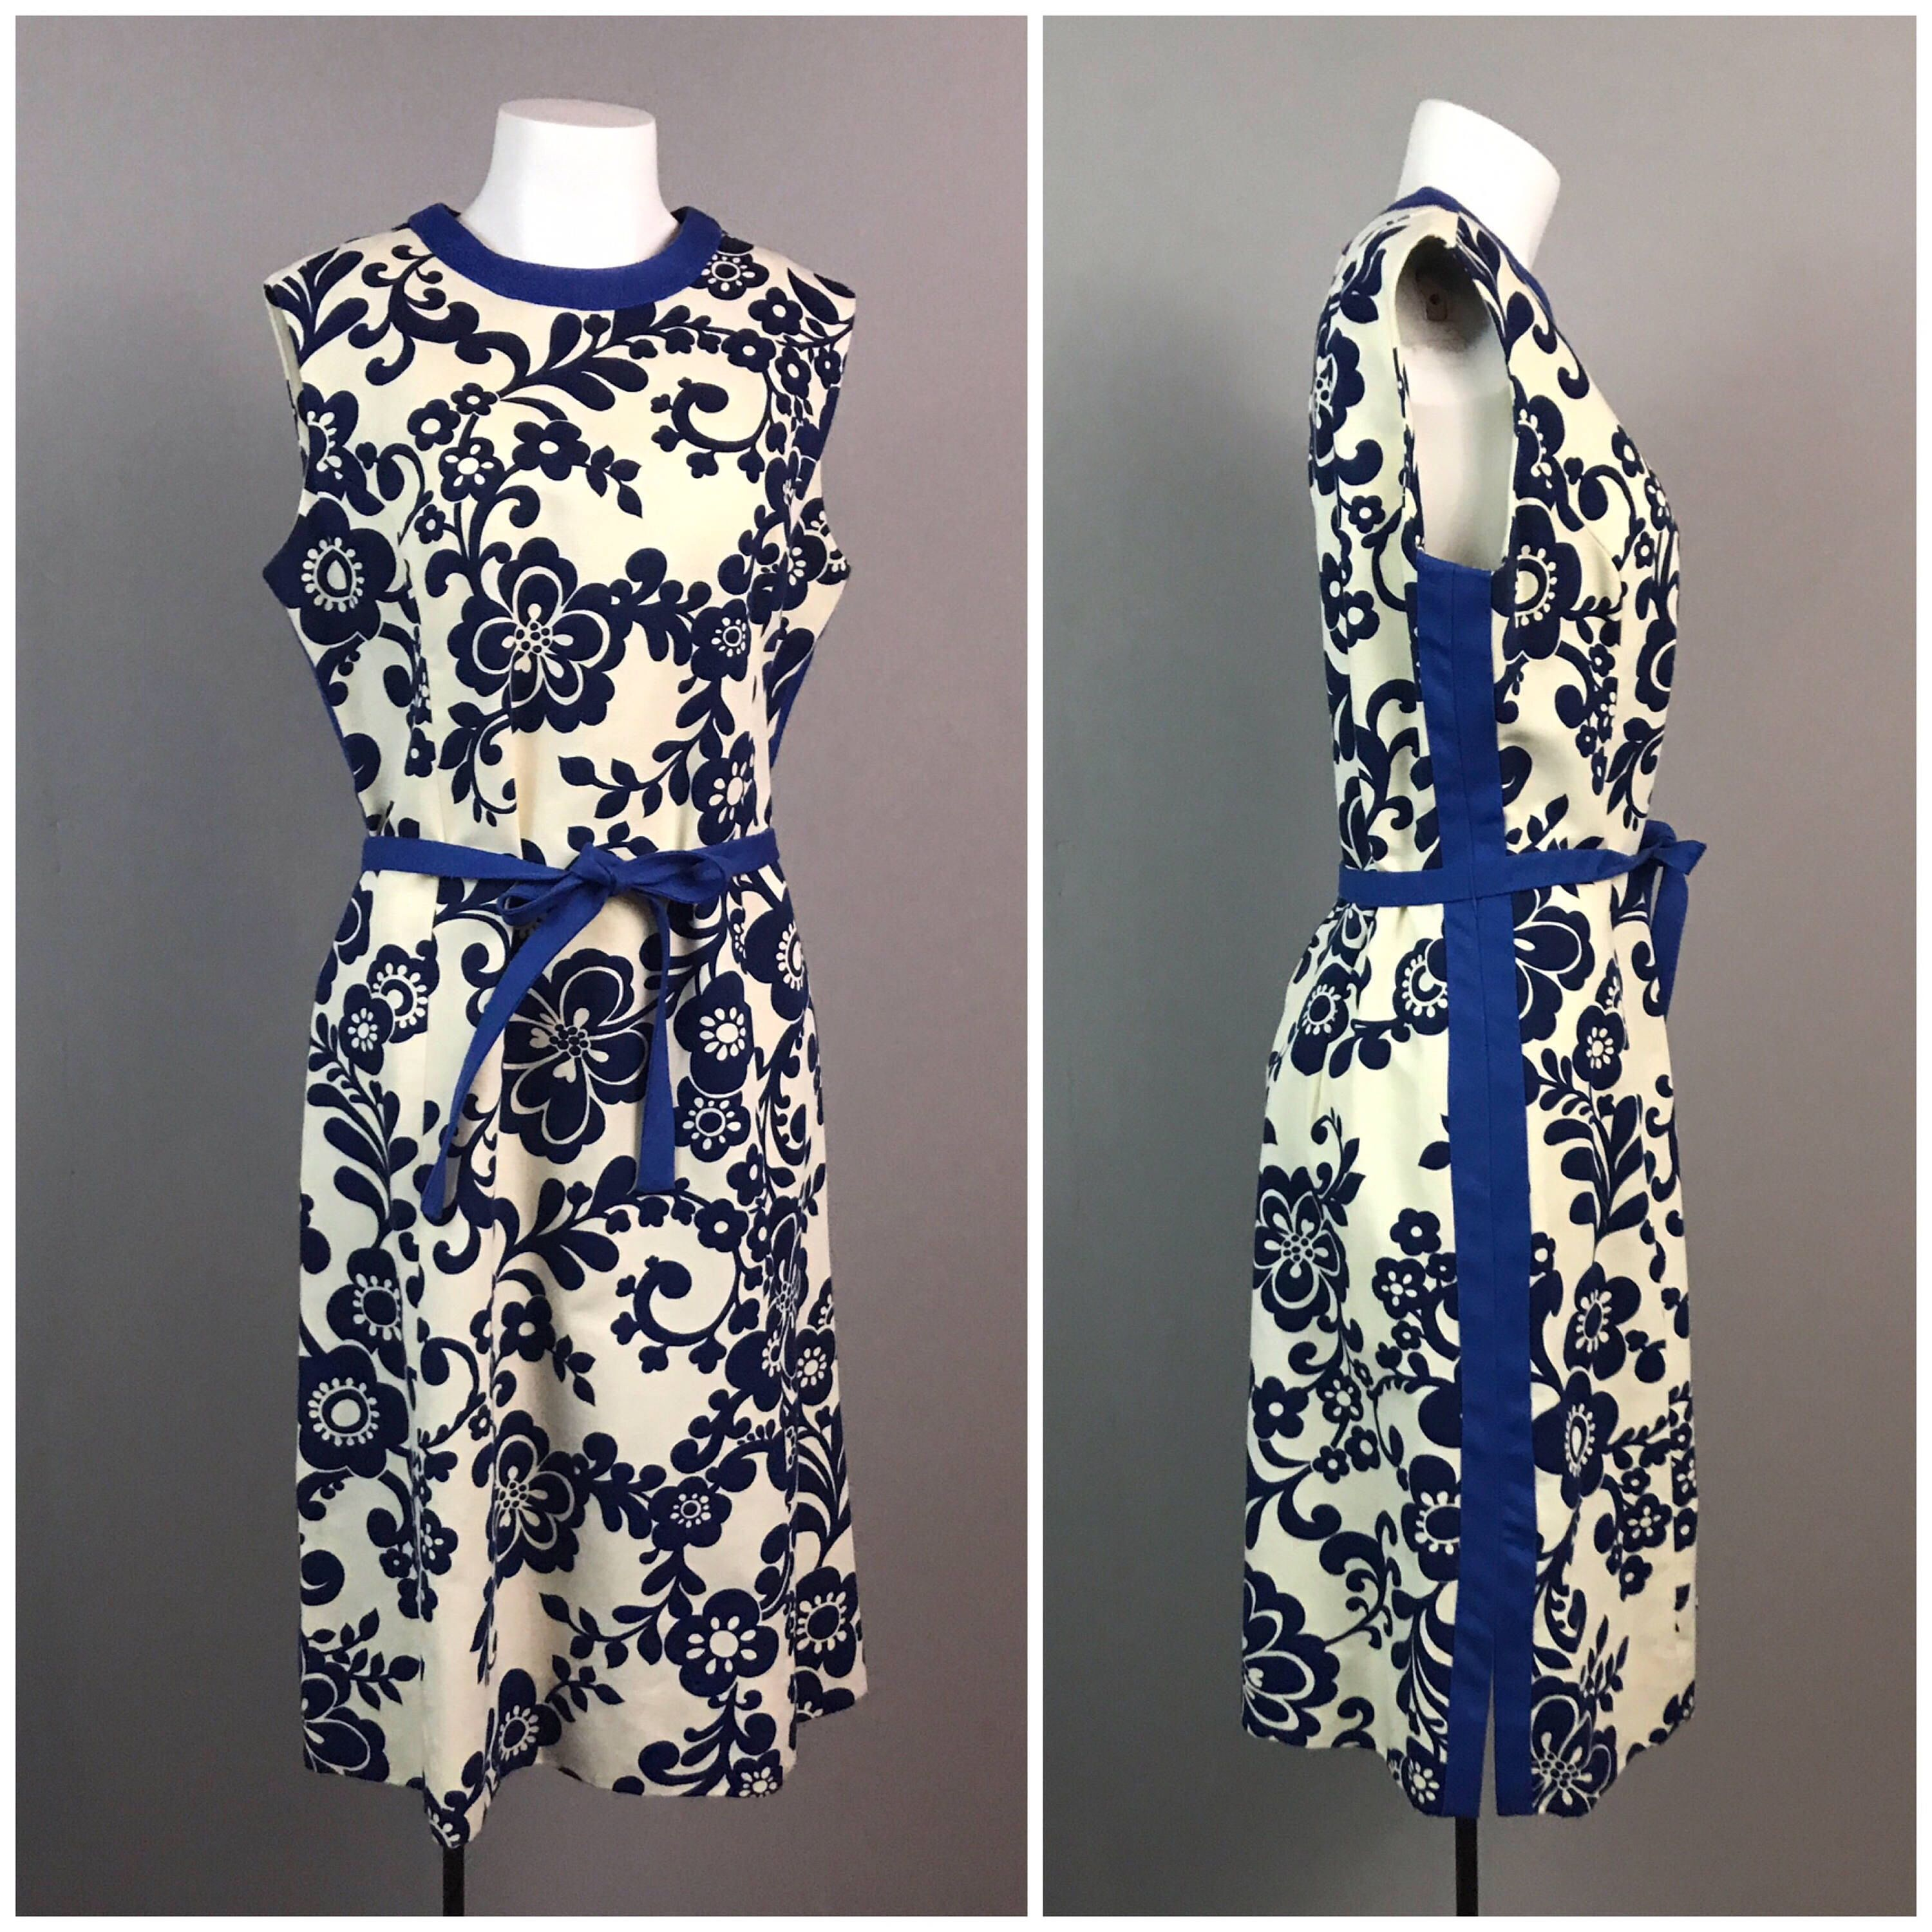 Vintage 1960s blue and white floral sleeveless shift dress womens vintage 1960s blue and white floral sleeveless shift dress womens large 60s tie belted izmirmasajfo